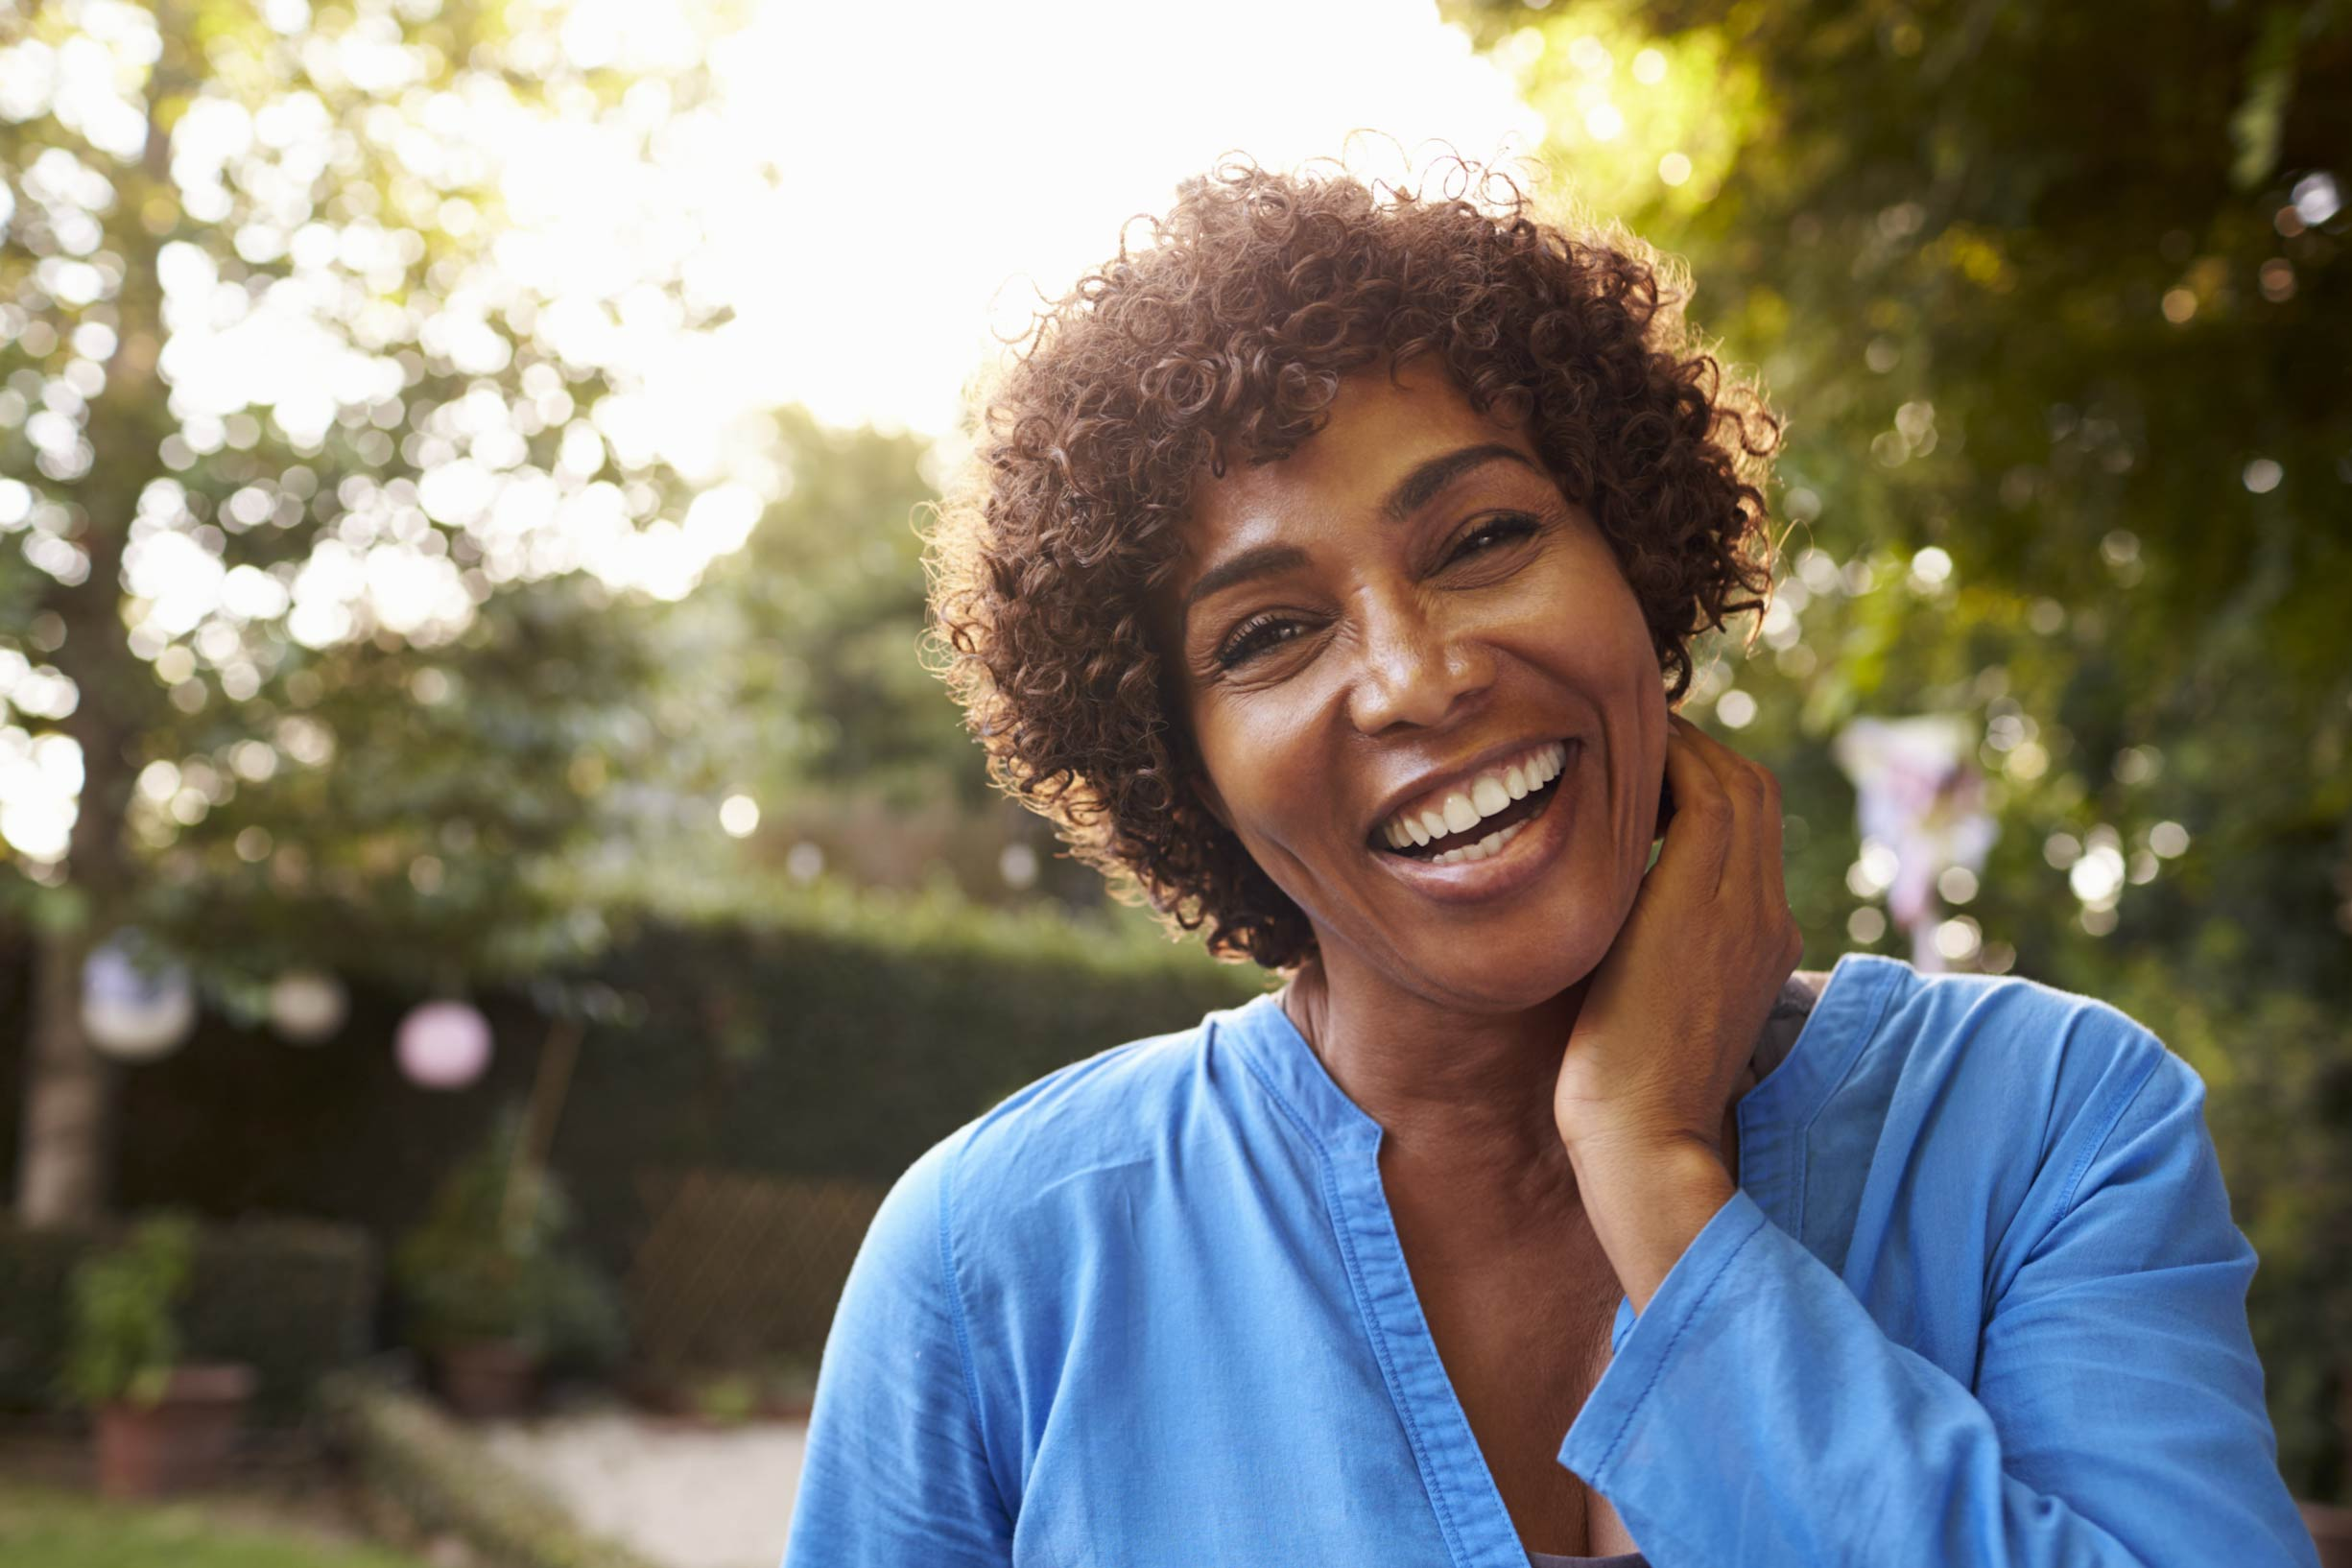 middle aged woman smiling outdoors